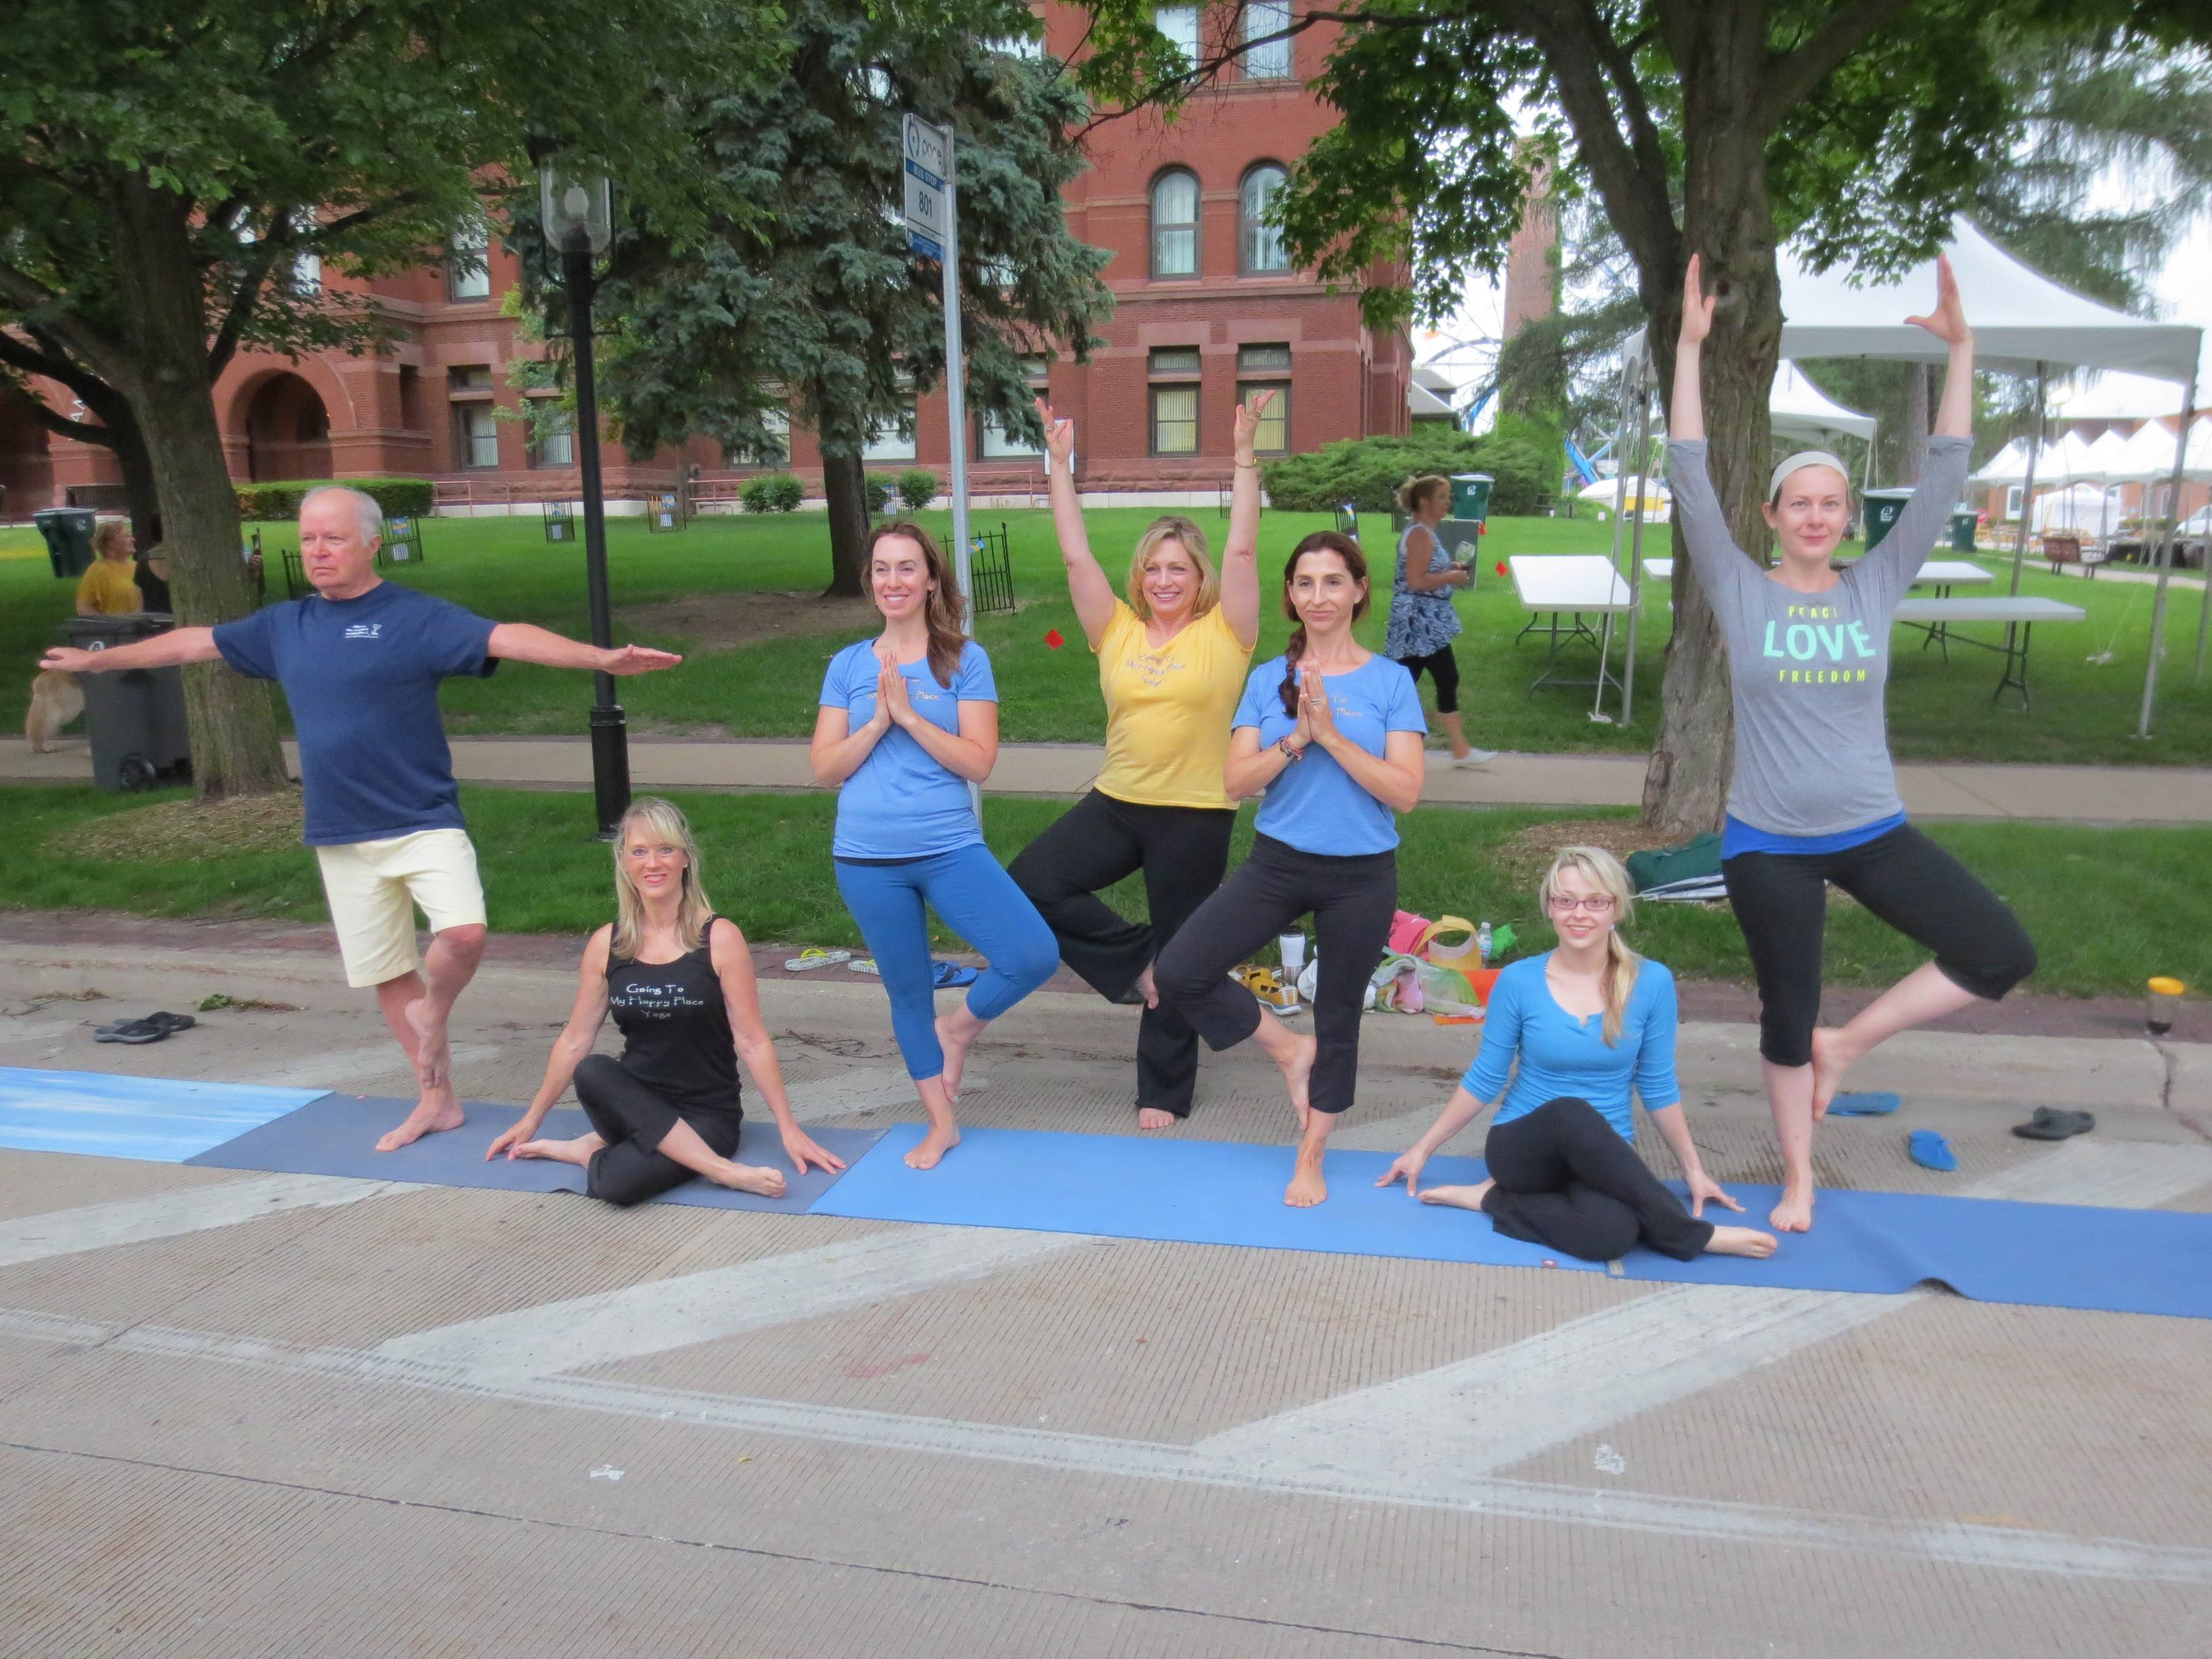 Kicking off Swedish Days brought out the best from Going To My Happy Place Yoga's instructors and students. Shown here in various yoga poses are Richard Keslinke, left, Debbie Leoni, Rita Esparza, Laurie Milbourn, April Waldrop, Crystal Skipworth and Leah Kamm.